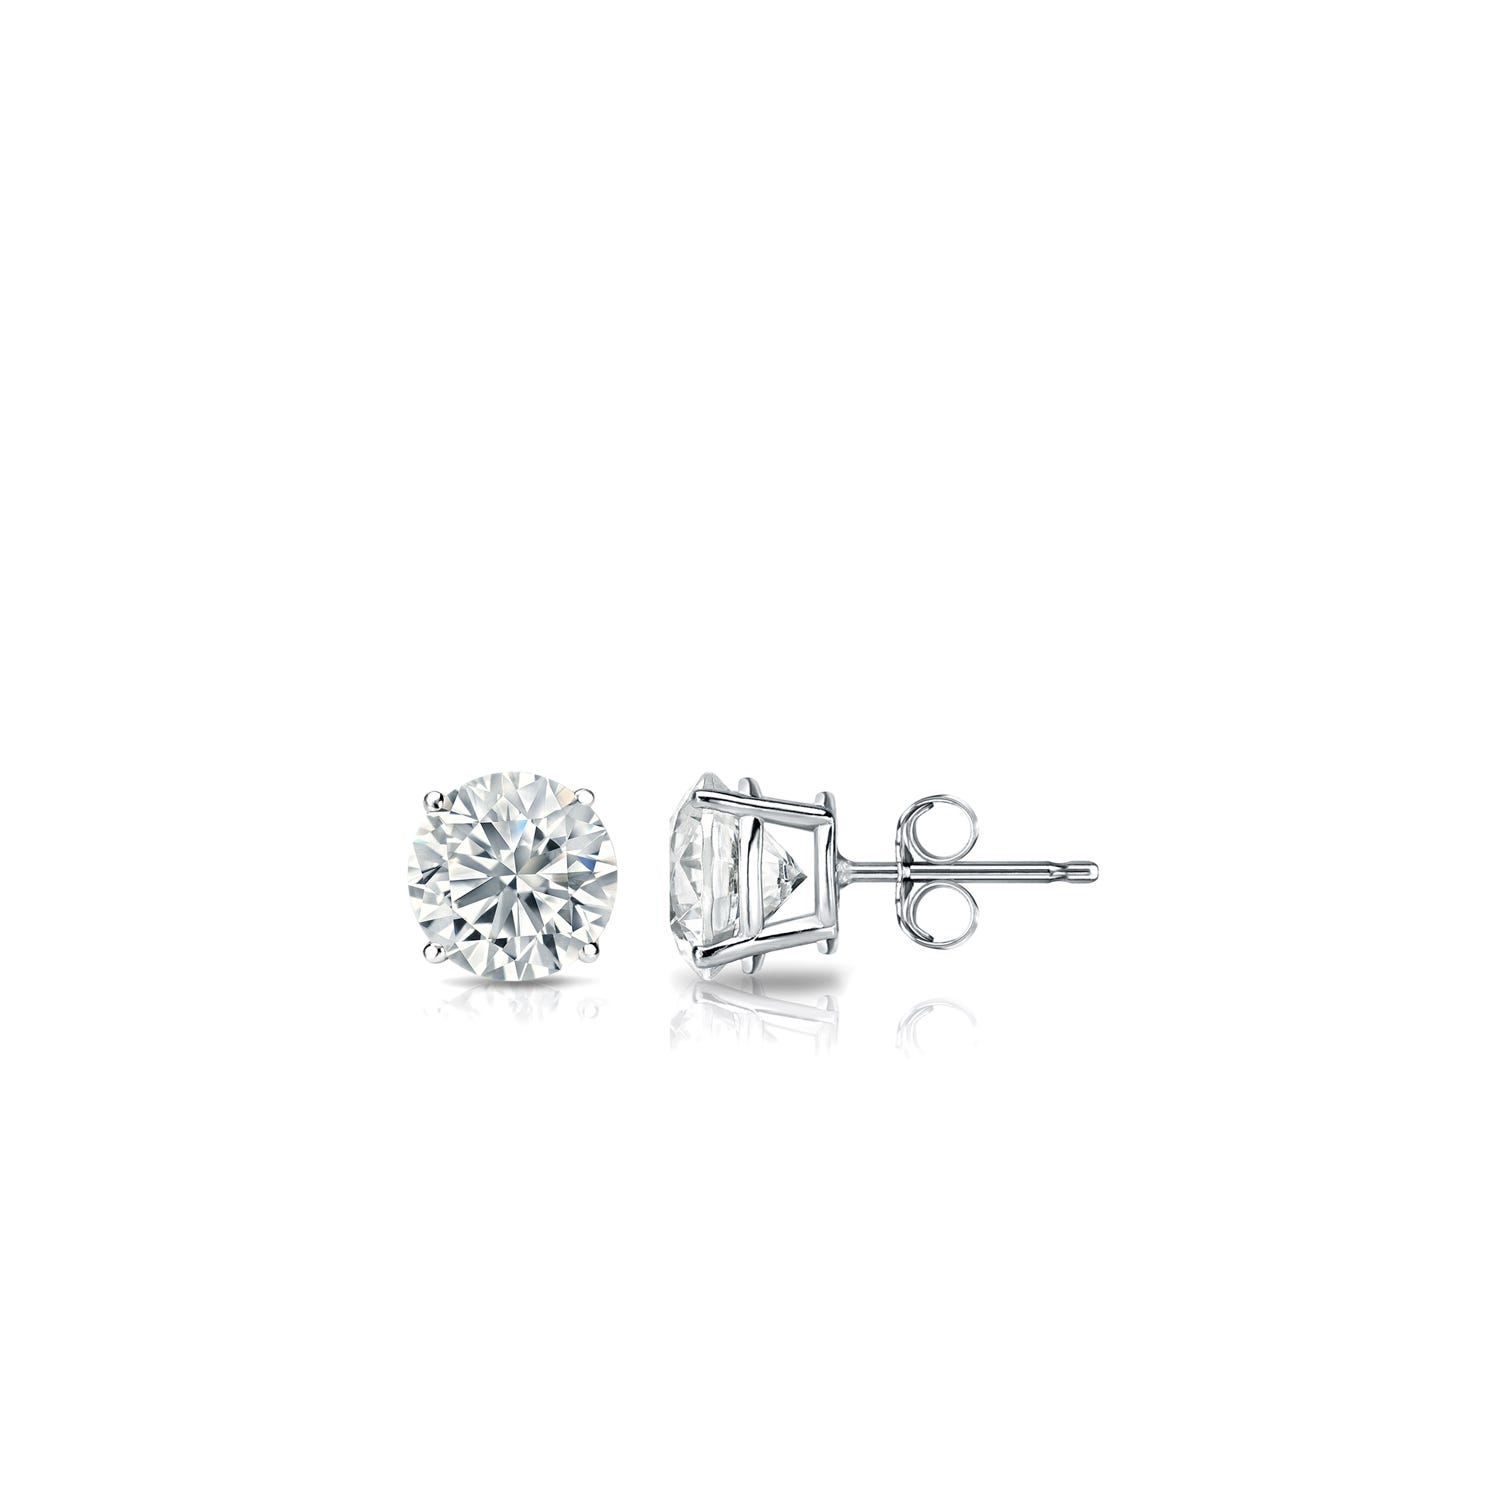 Diamond 1/10ctw. Round Solitaire Stud Earrings (I-J, I2) 14k White Gold